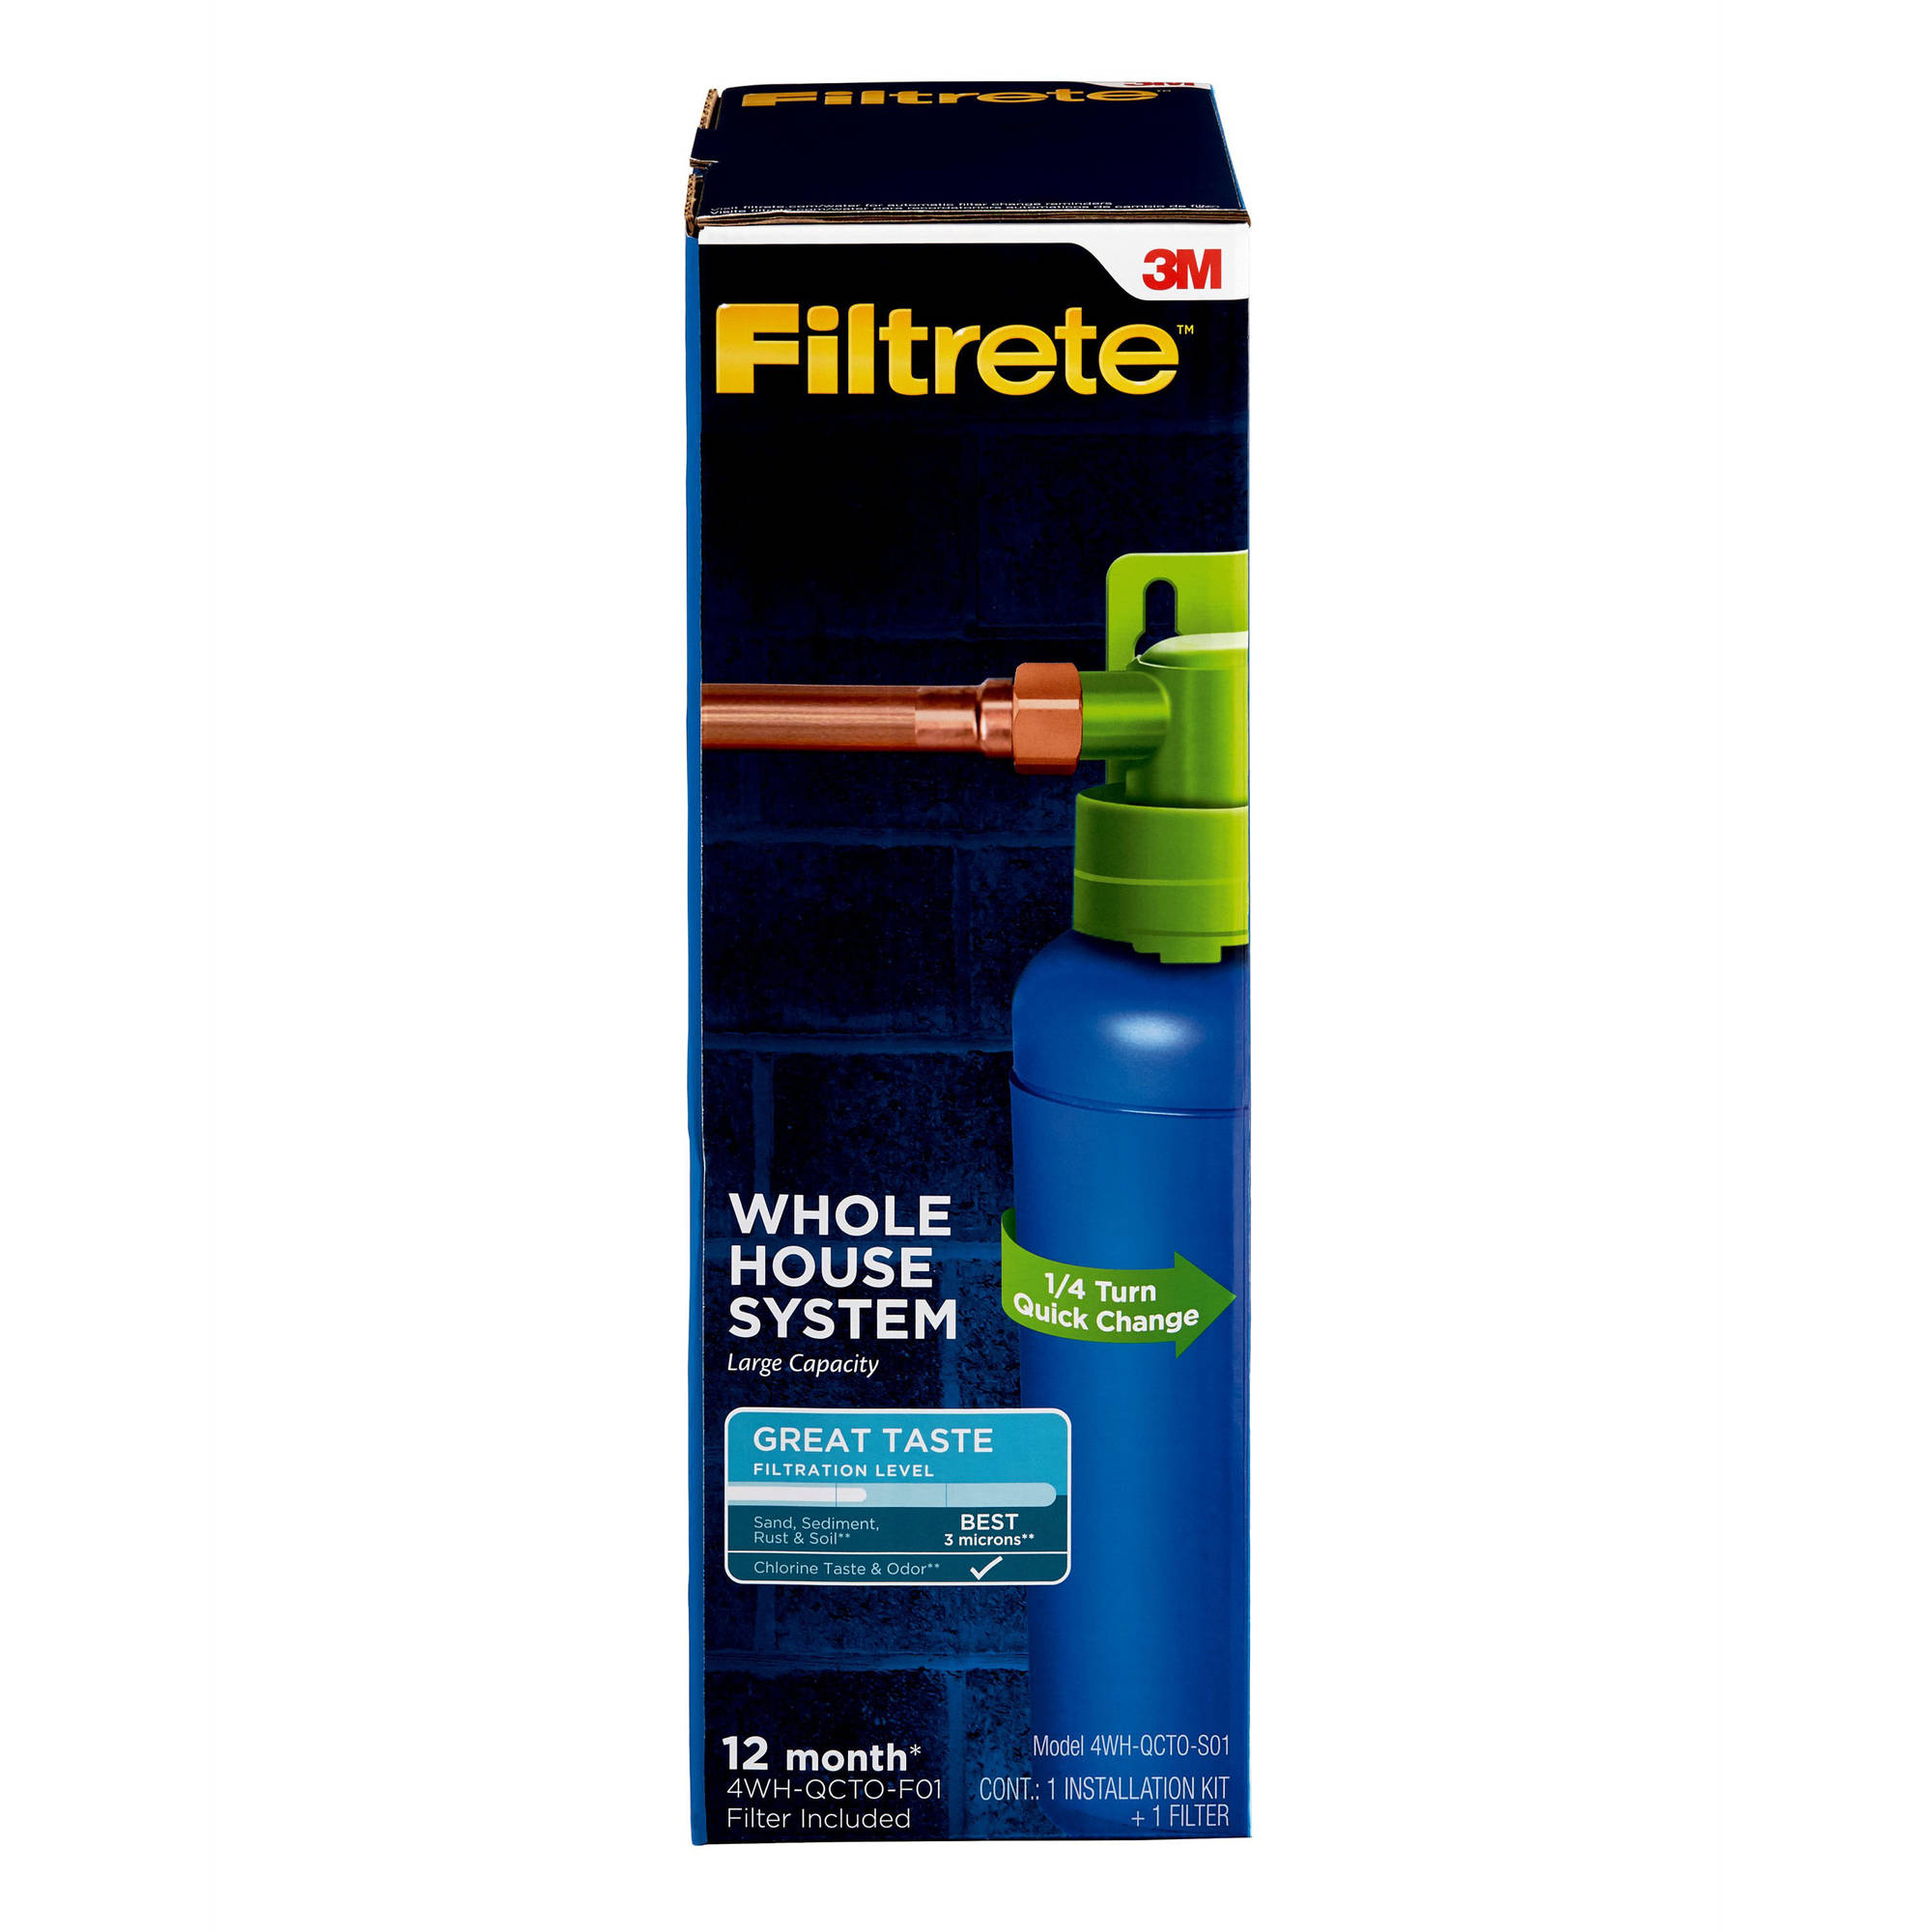 "Filtrete"" Quick Change Whole House System, Large Capacity, Standard Filtration (sediment, CTO)"